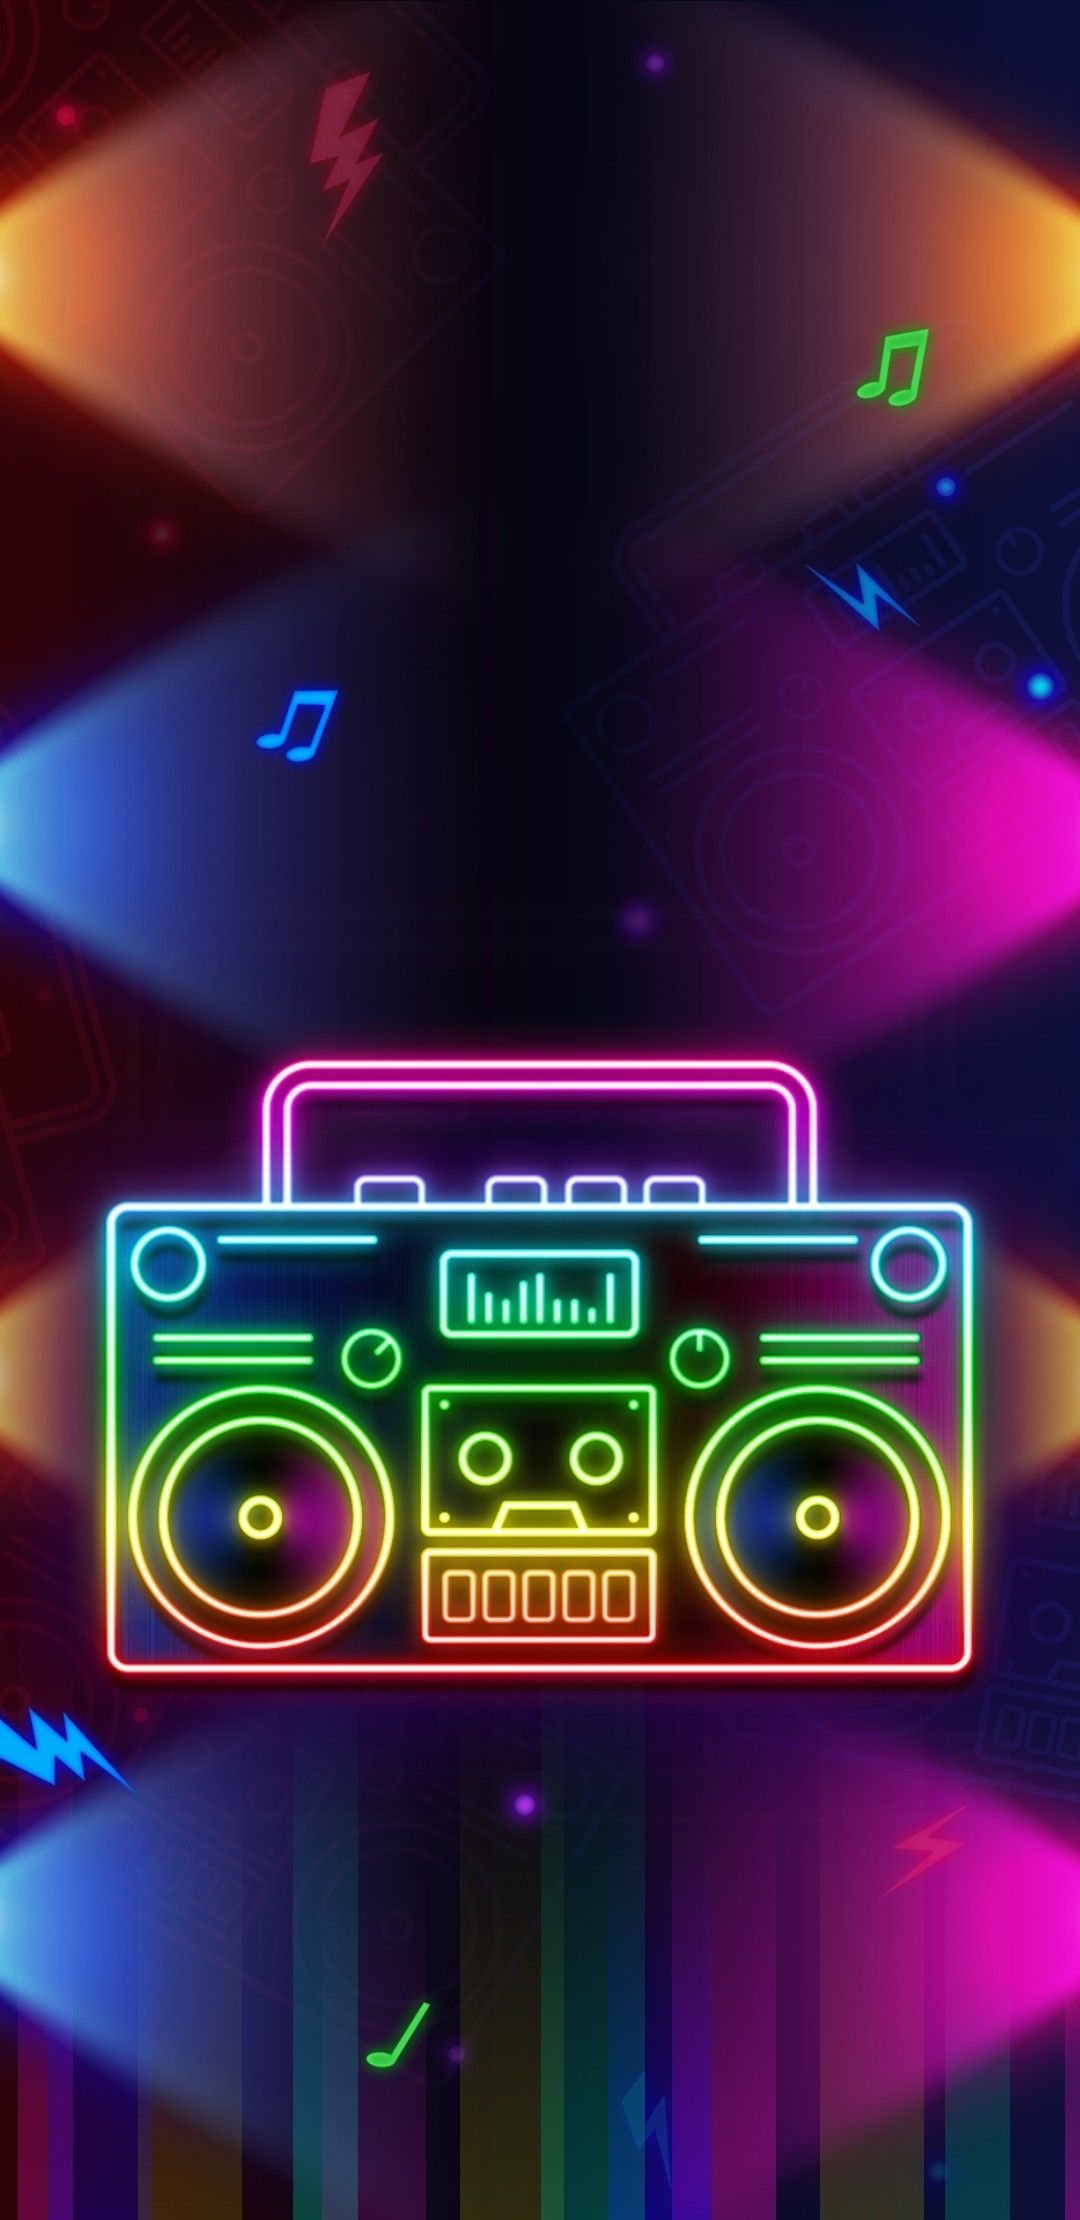 Pin By Kathy Beckwith On Girly Droid Wallpapers Neon Wallpaper Neon Design Rainbow Colors